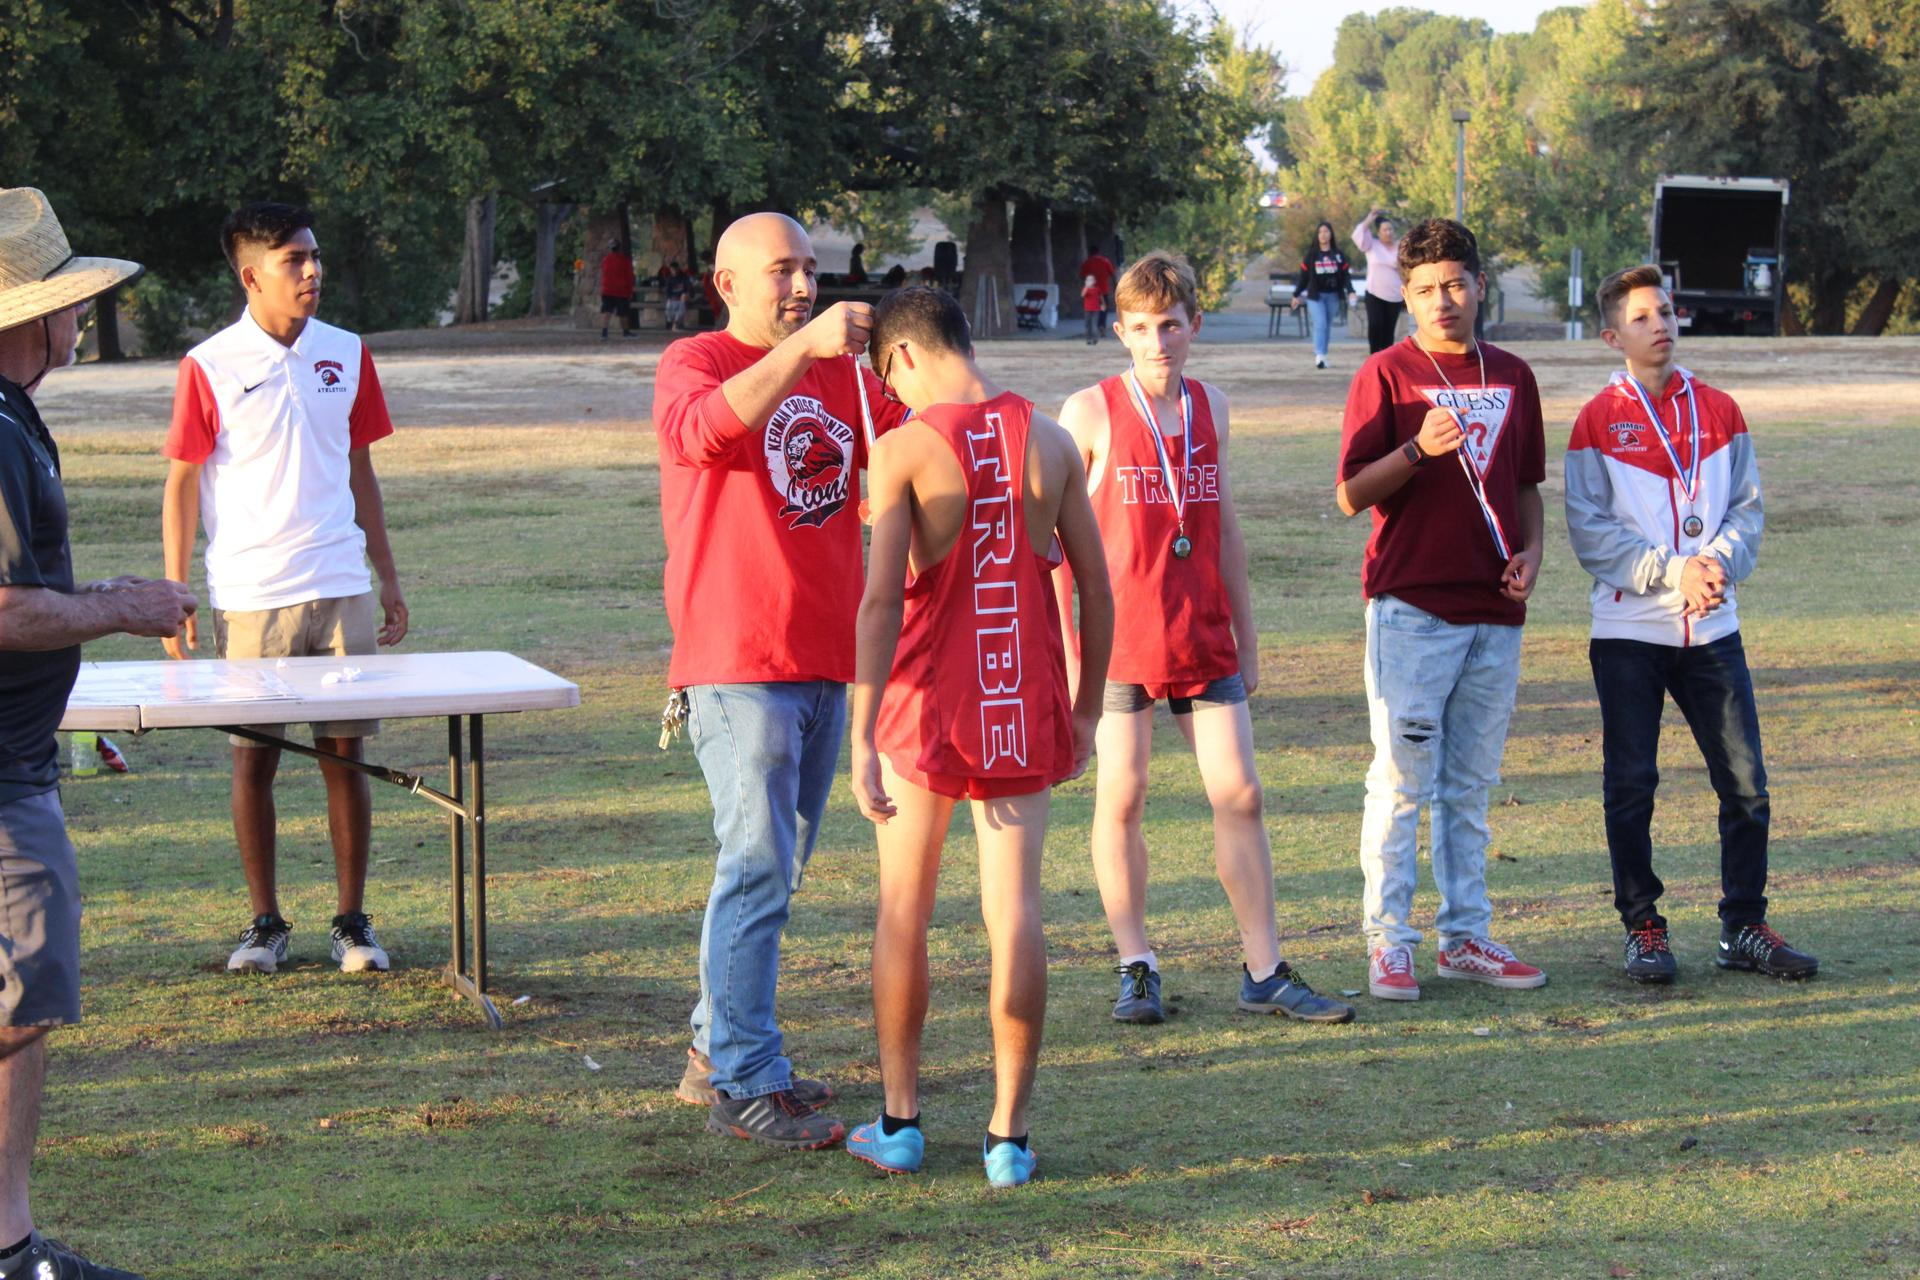 JV Boys First Place Medal is awarded.